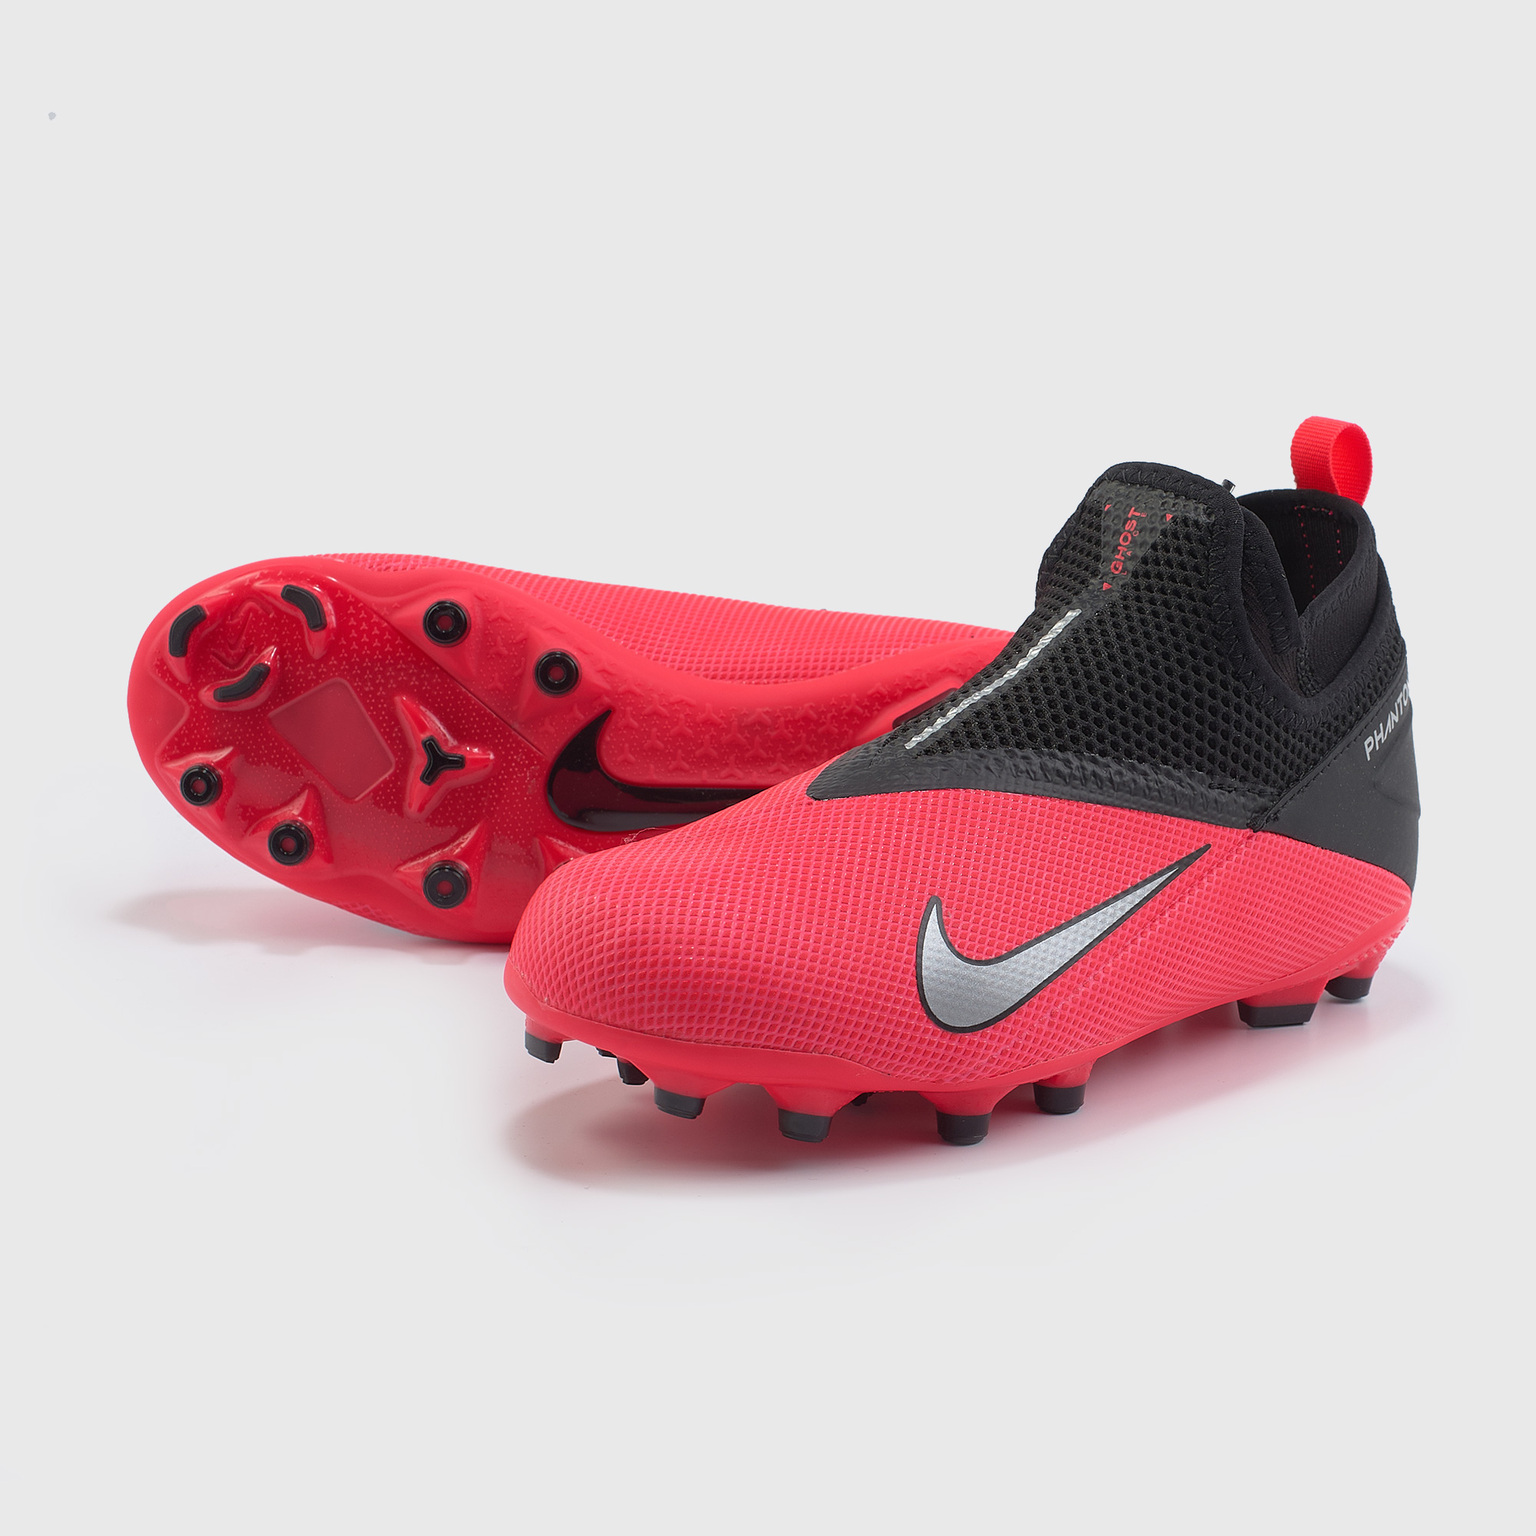 Бутсы детские Nike Phantom Vision 2 Academy DF FG/MG CD4059-606 бутсы nike phantom vision 2 pro df fg cd4162 606